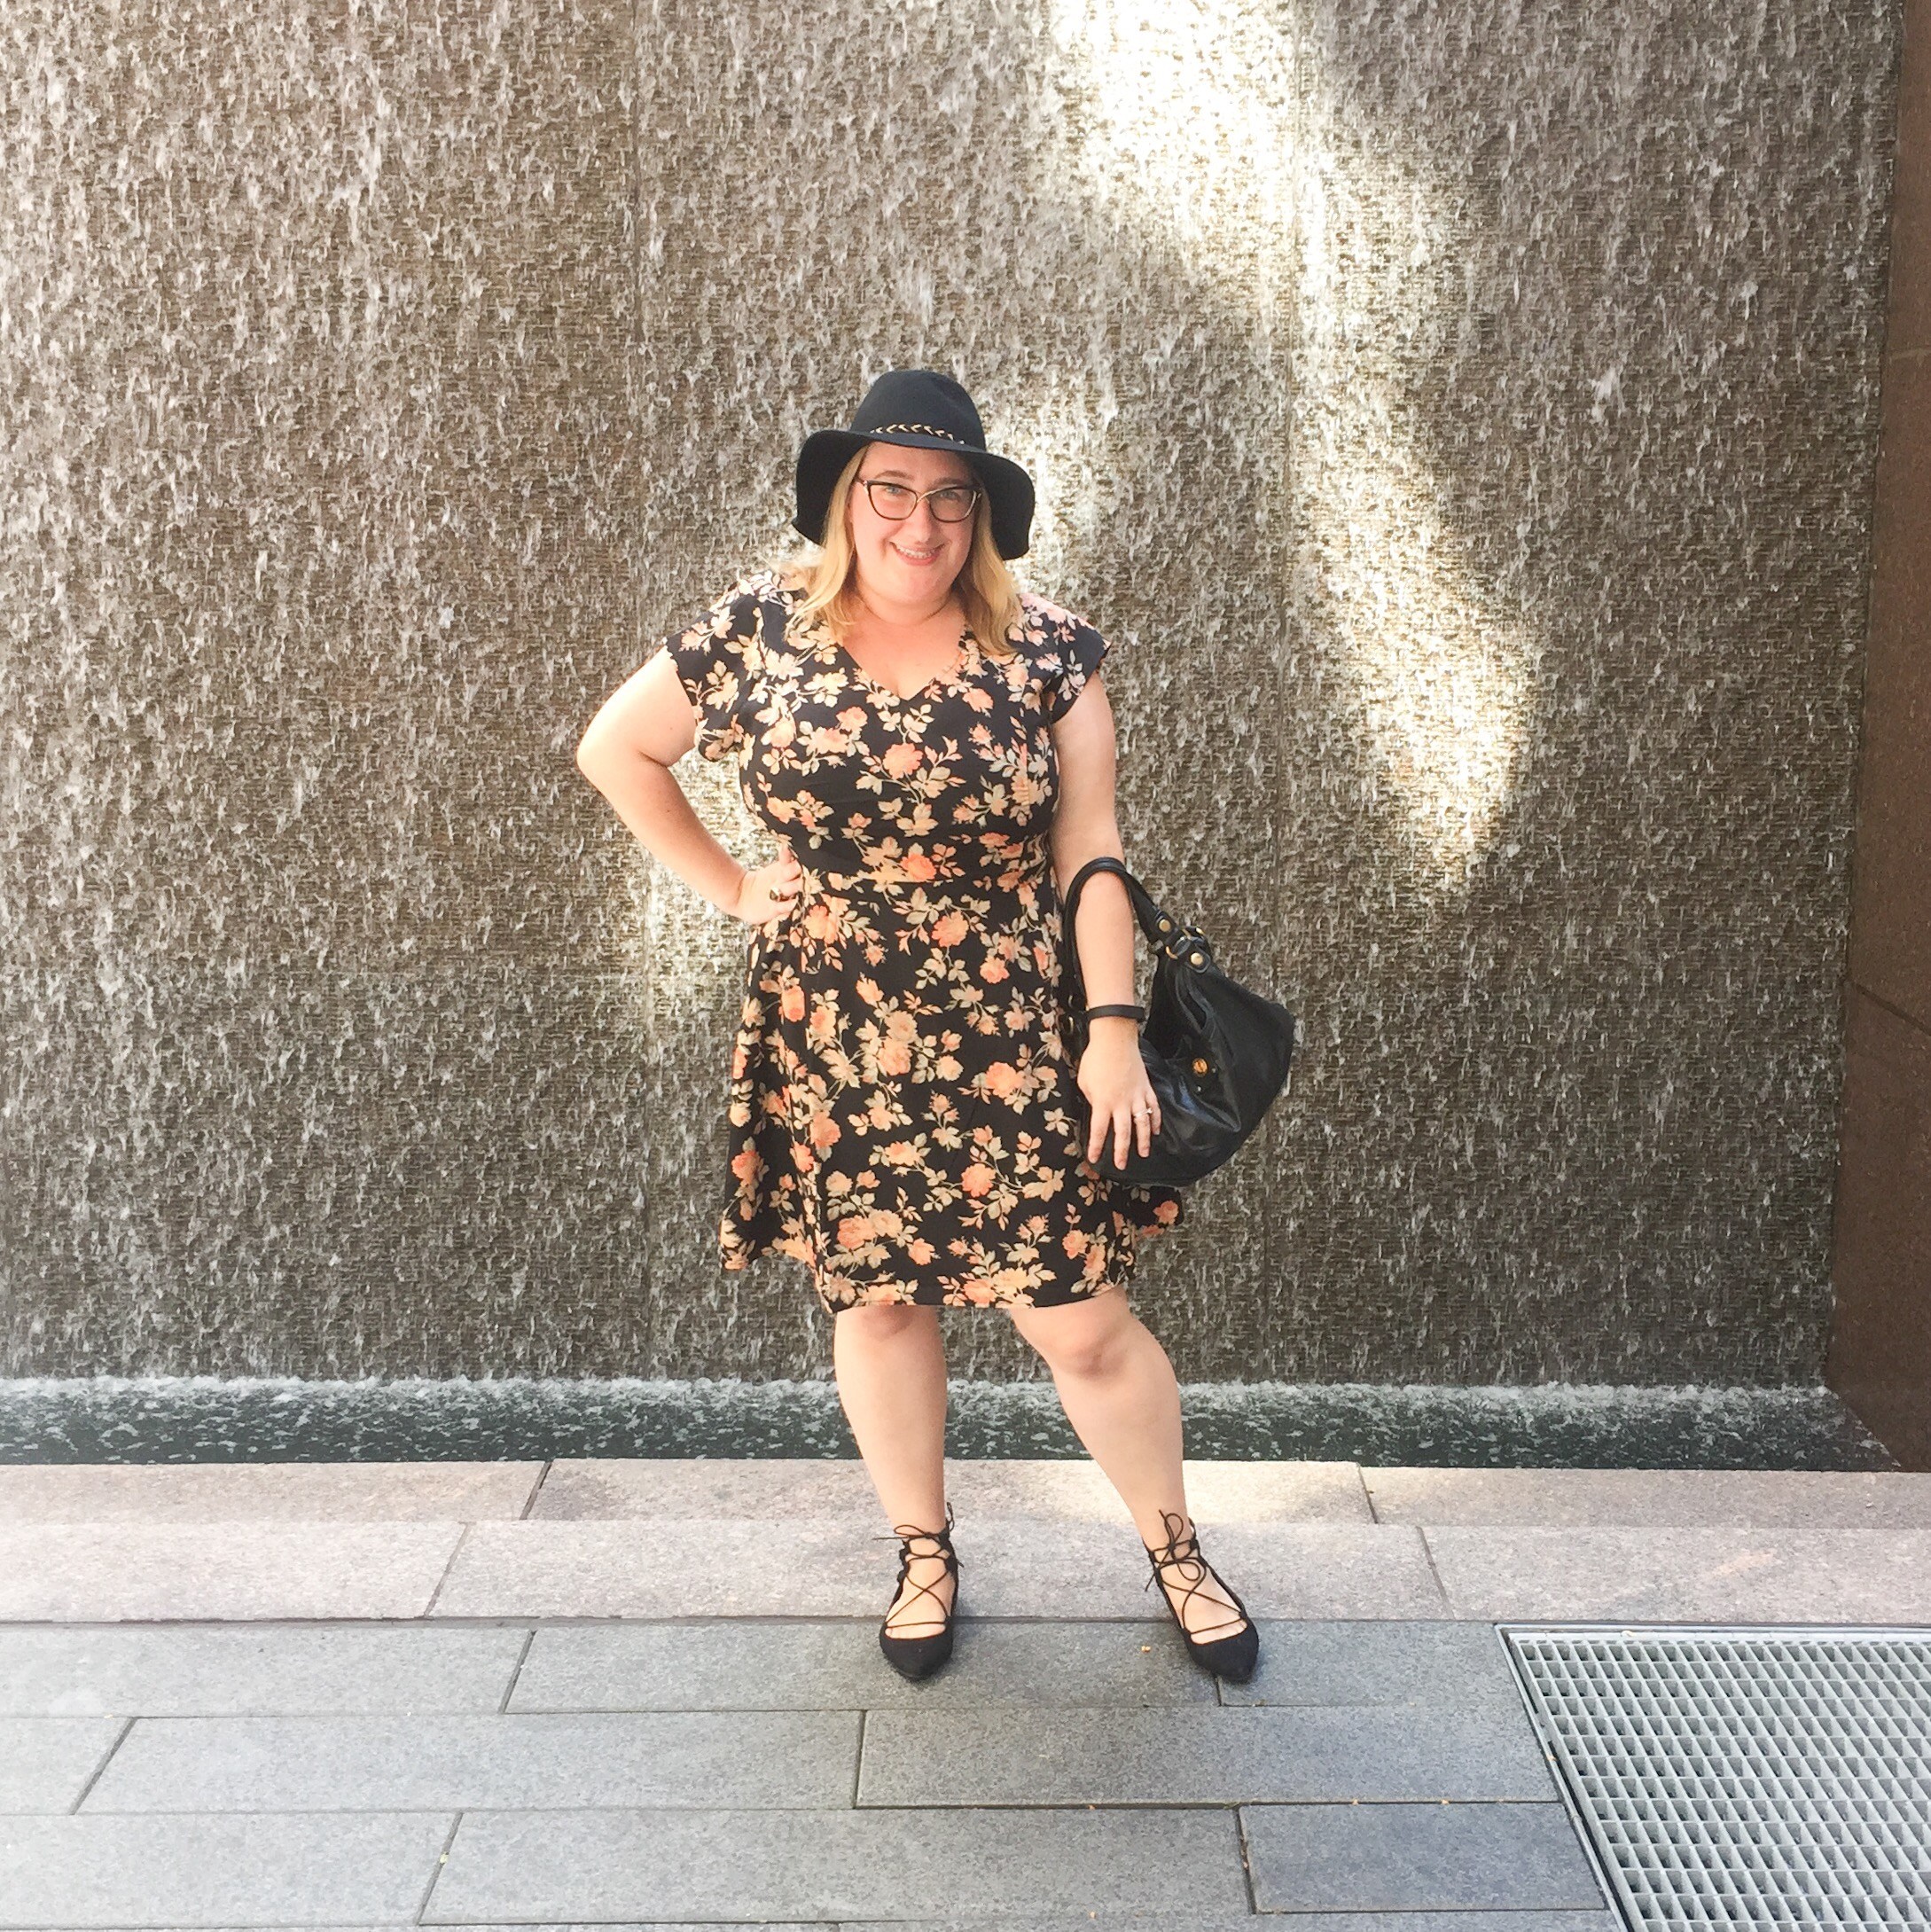 OOTD: Dark Florals and Lace Up Flats